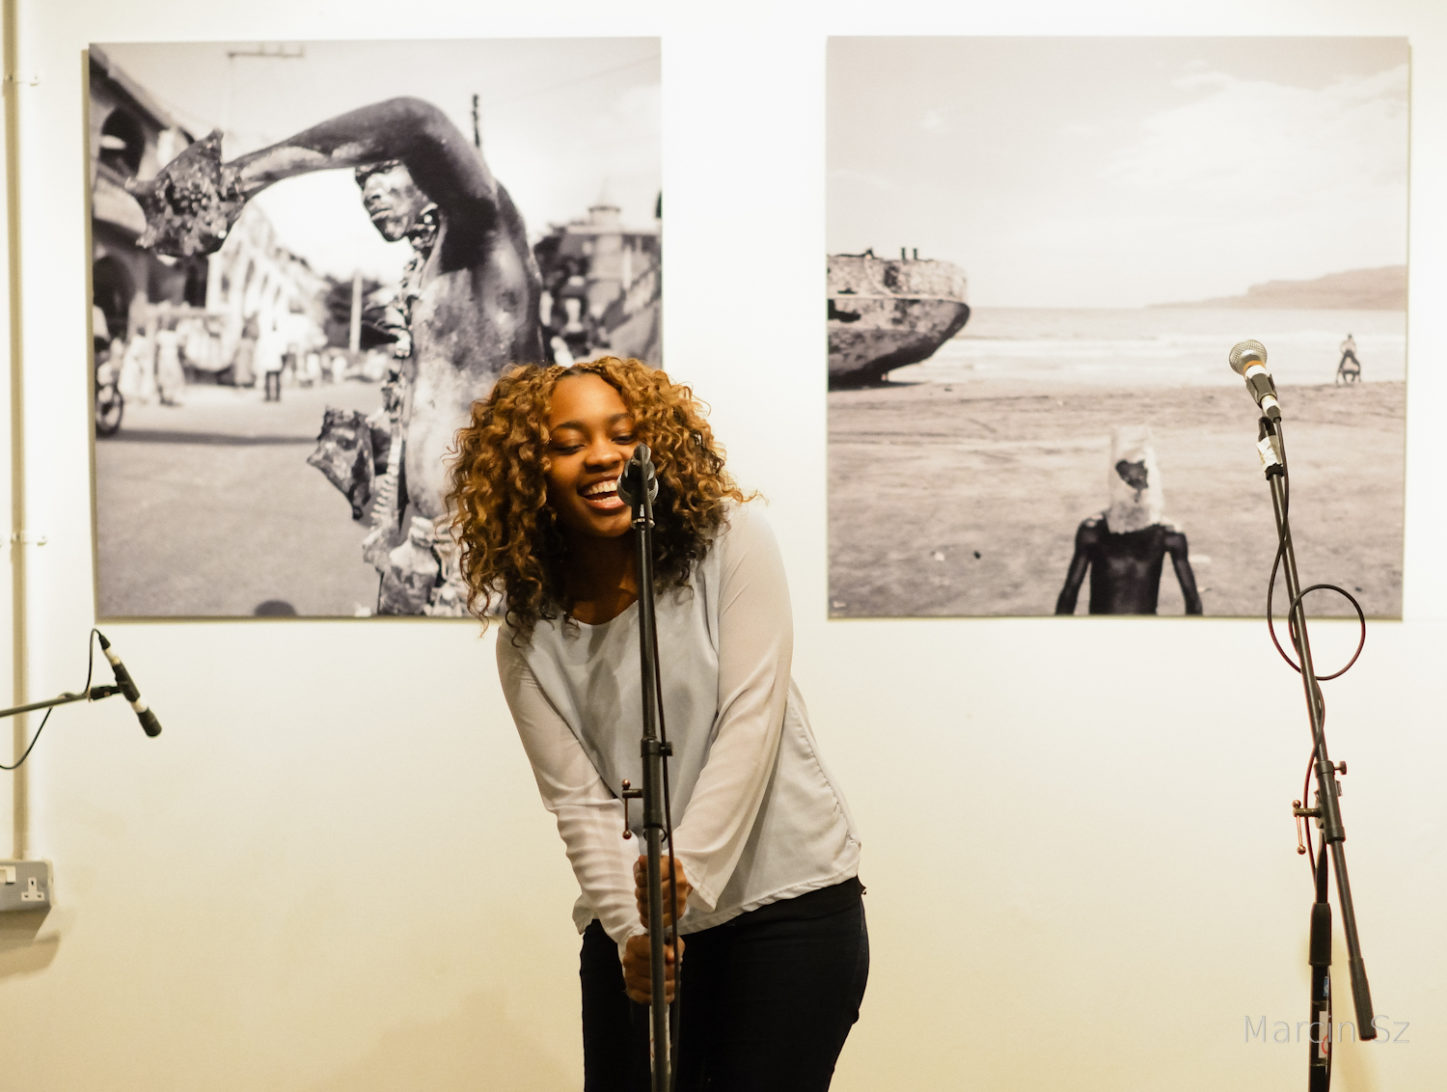 An image of a young woman performing in front of a photographic exhibition using a microphone and laughing. Picture by Marcin Sz.